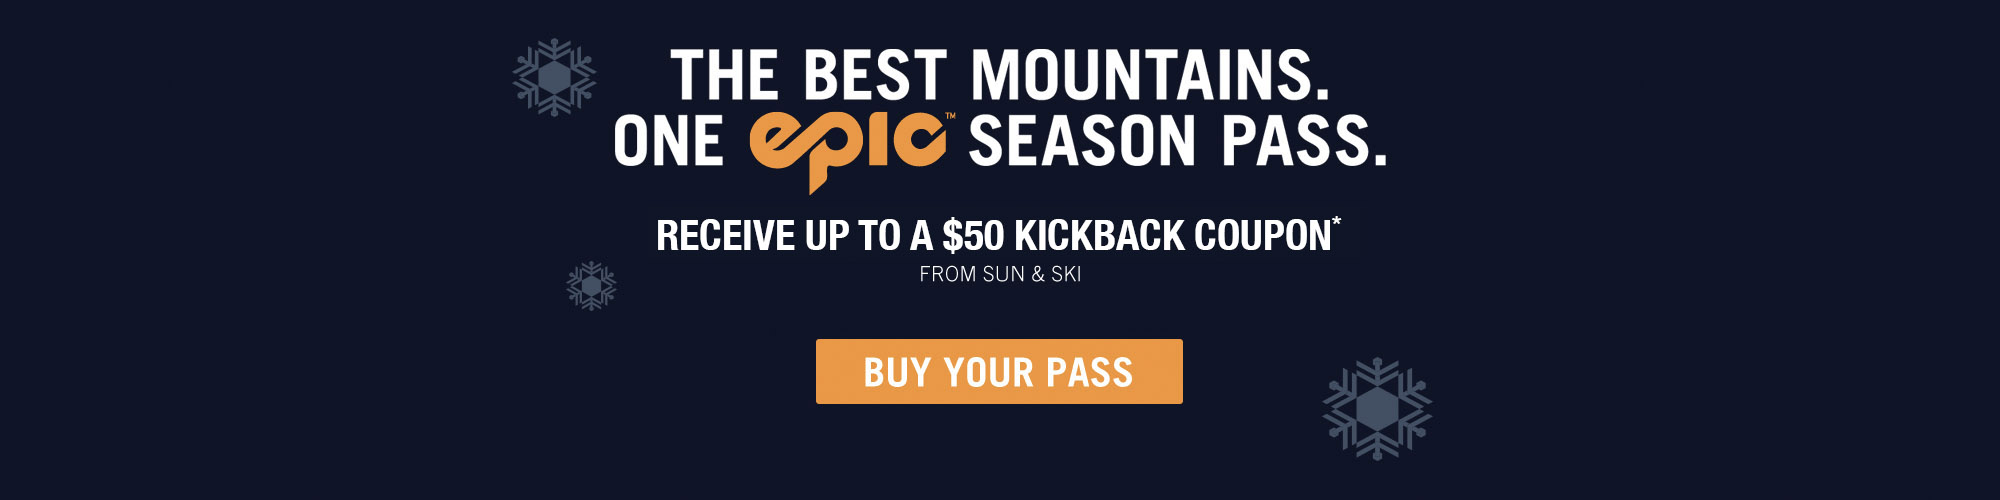 The Best Mountains. One Epic Season Pass - Get Yours Today